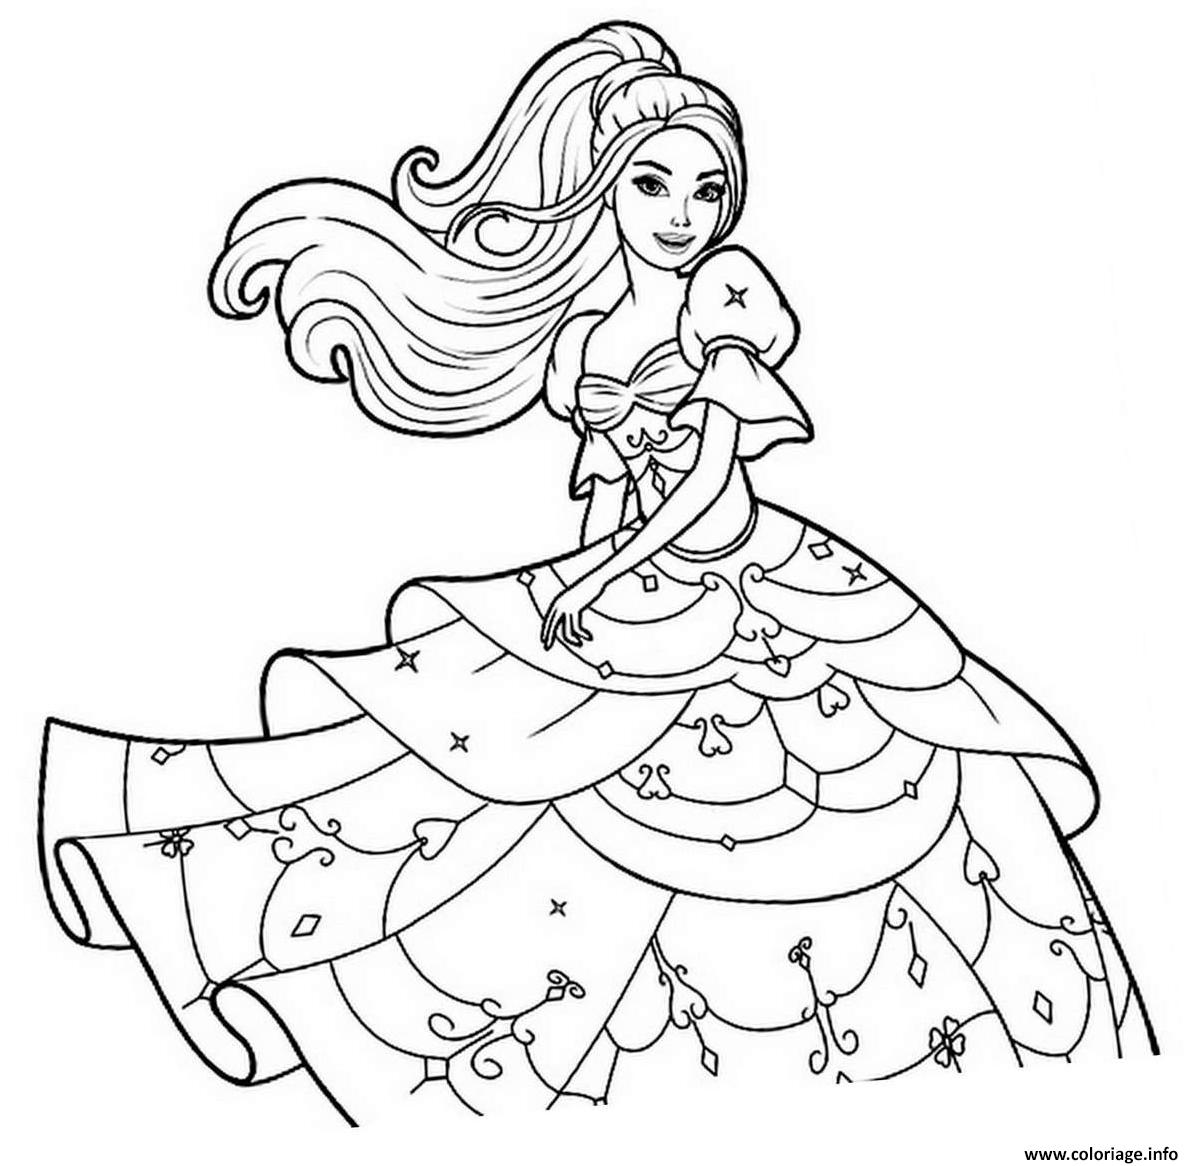 Favori Coloriage Disney Princesse 148 dessin DQ53